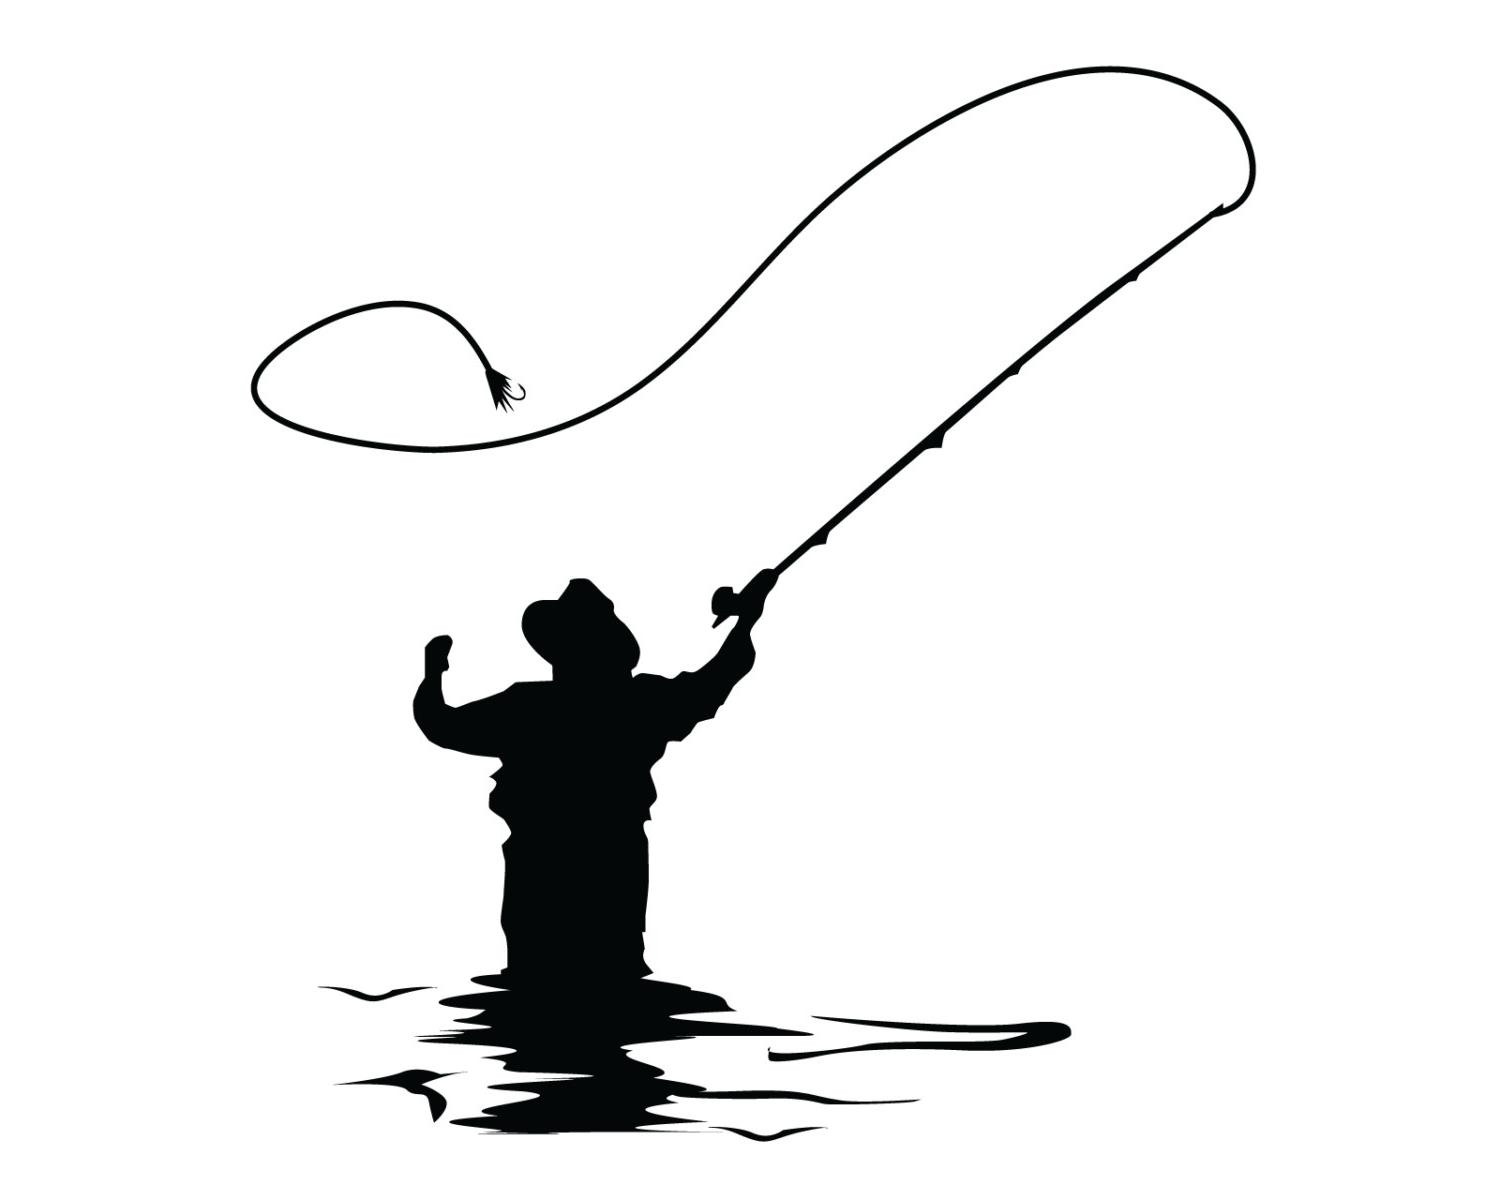 fly fishing silhouette image at getdrawings com free for personal rh getdrawings com fishing clip art free images fishing clip art borders